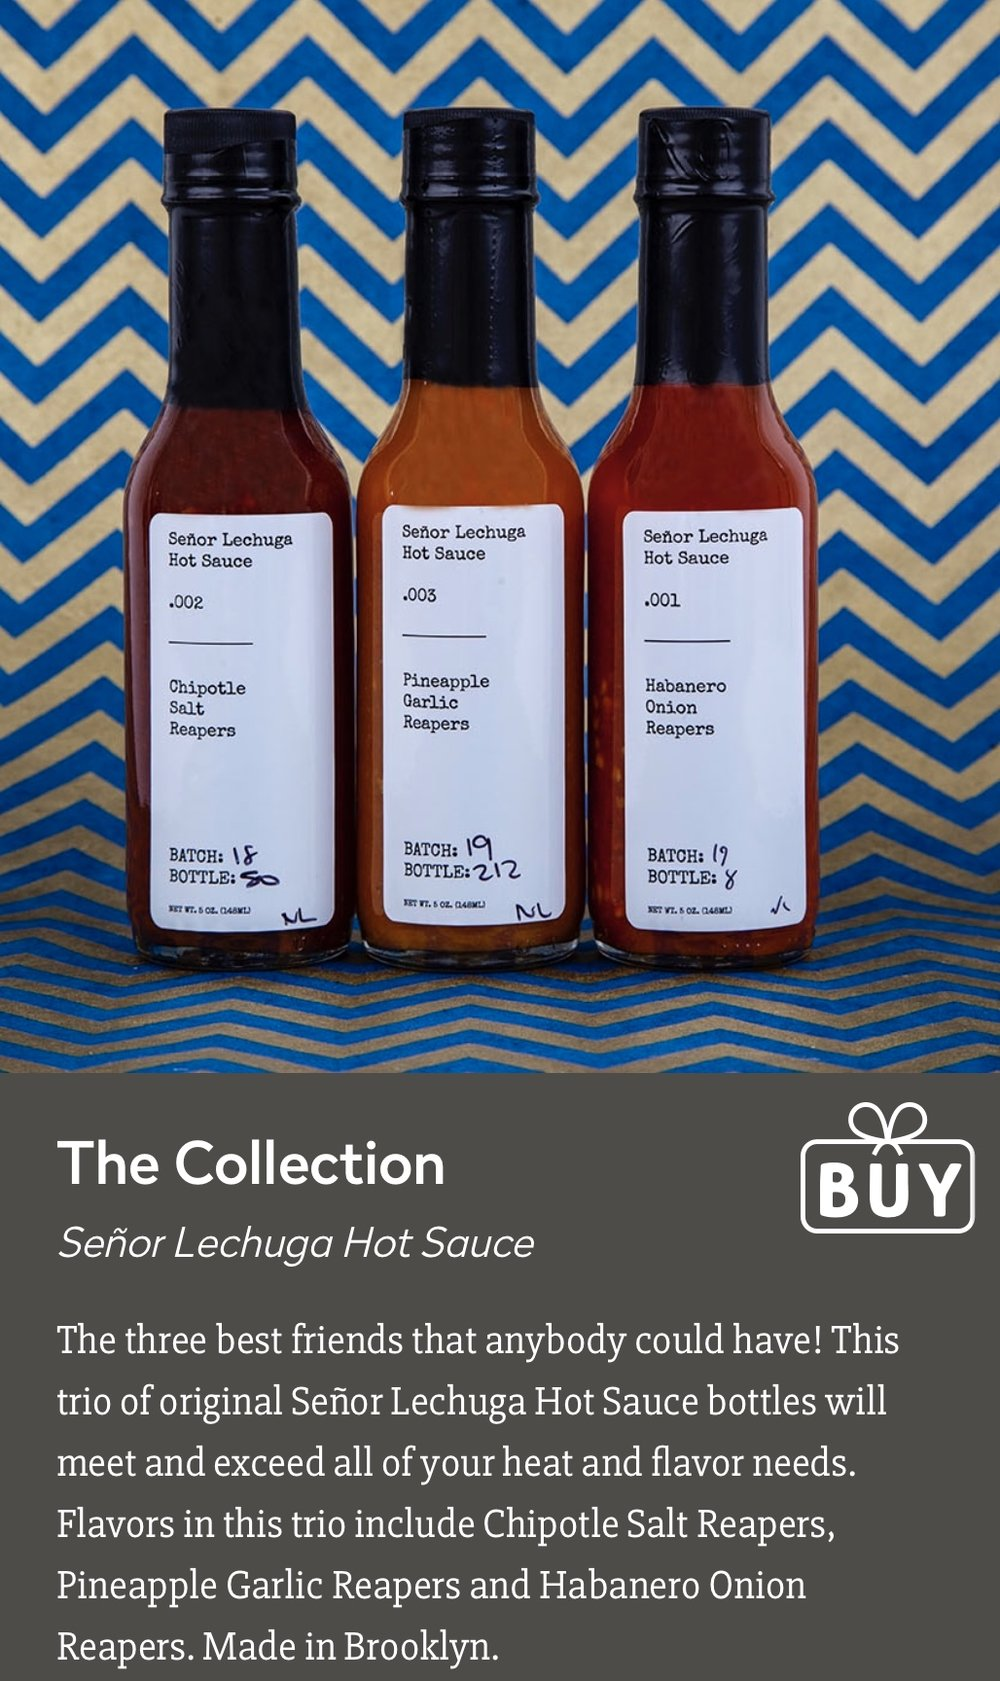 "Made in NYC   2018 Gifted and Talented Holiday Gift Guide   ""The three best friends that anybody could have! This trio of original Señor Lechuga Hot Sauce bottles will meet and exceed all of your heat and flavor needs. Flavors in this trio include Chipotle Salt Reapers, Pineapple Garlic Reapers and Habanero Onion Reapers. Made in Brooklyn."